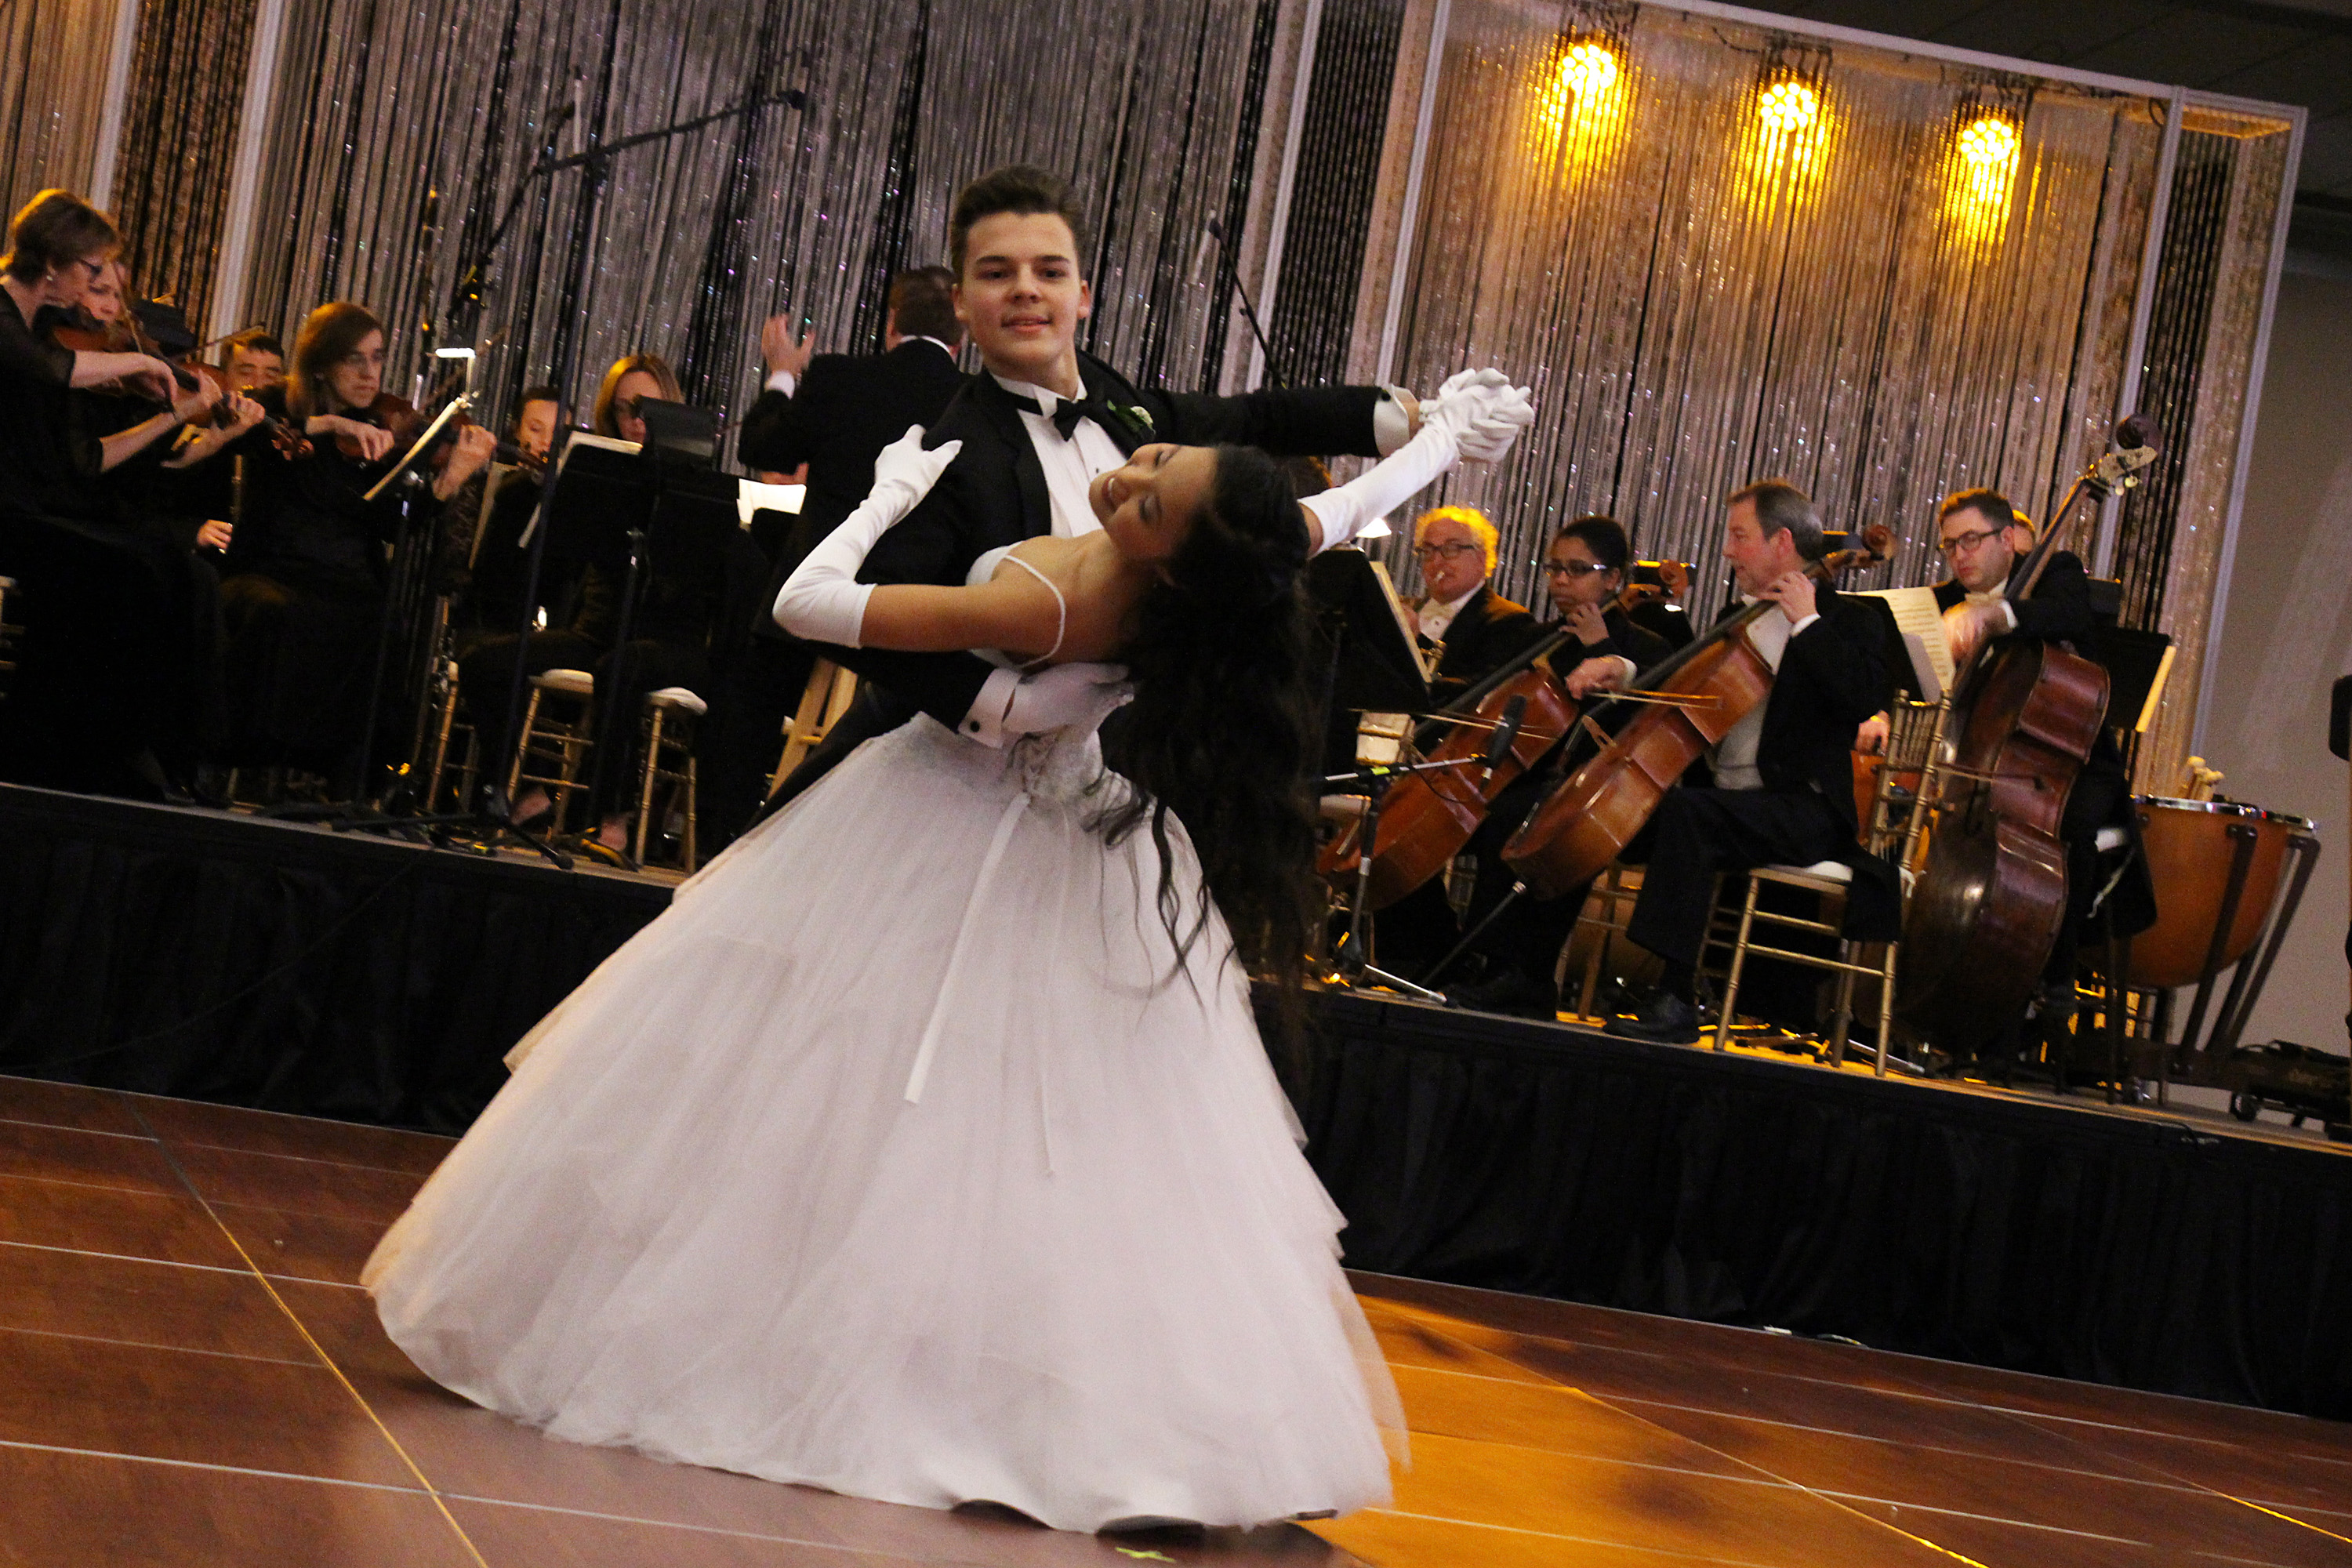 Viennese Winter Ball